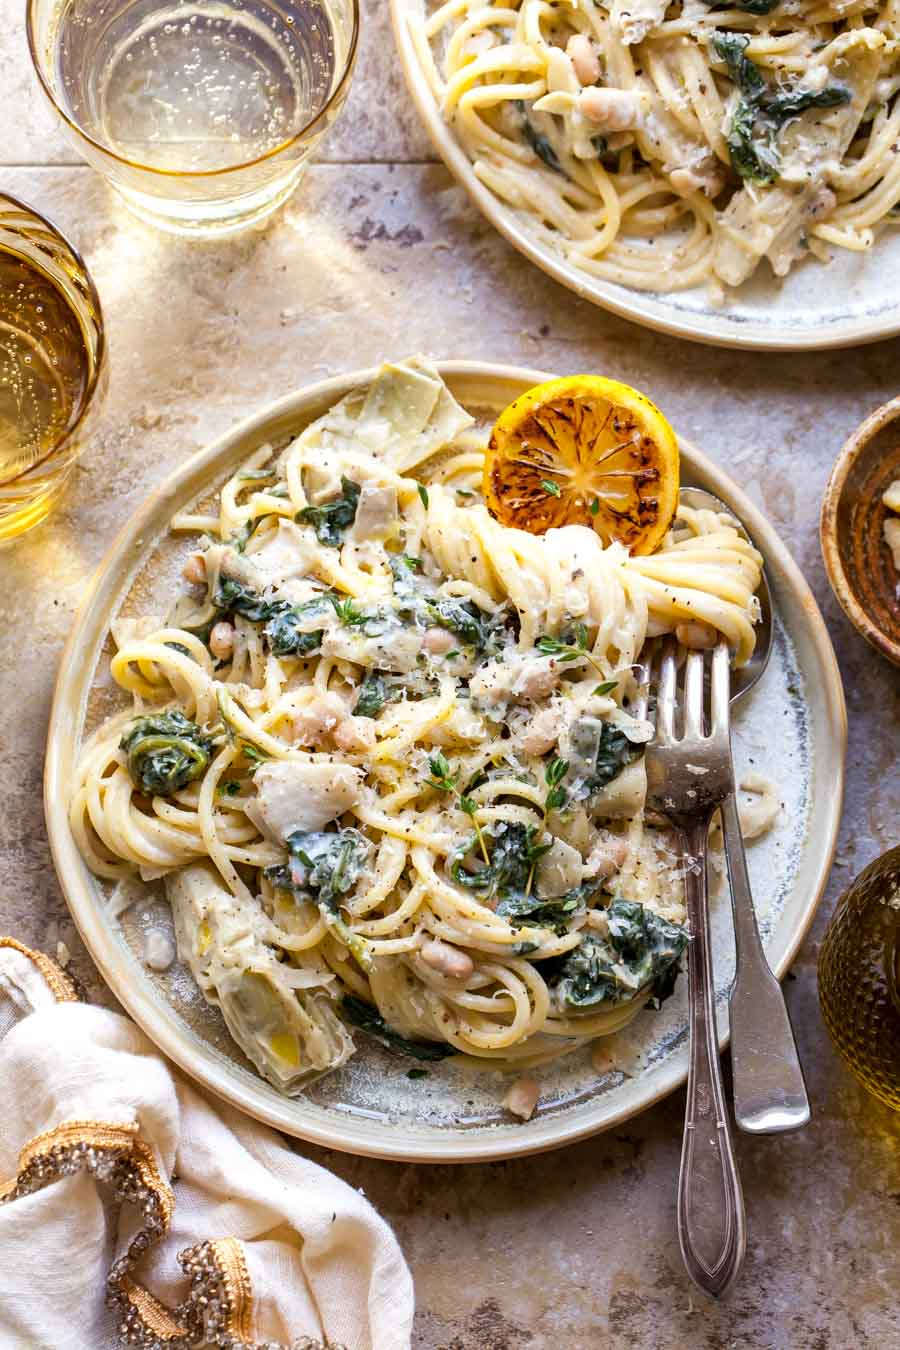 Vegetarian Spinach Artichoke Pasta with White Beans and Lemon-Parmesan Sauce